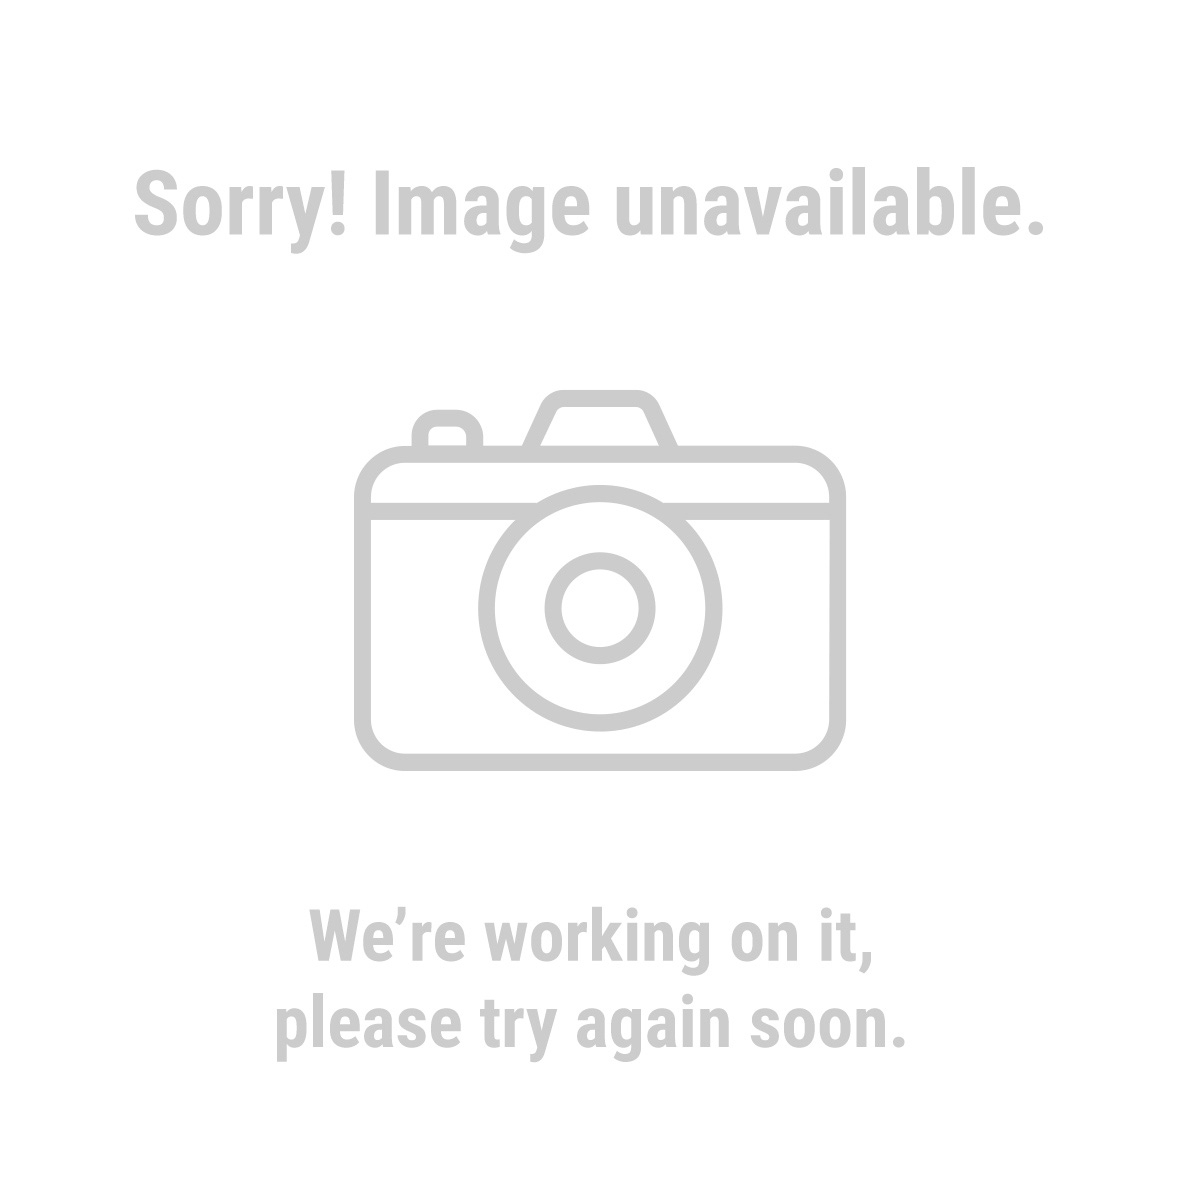 Chicago Electric 8857 10 Ft. x 16 Gauge Outdoor Extension Cord